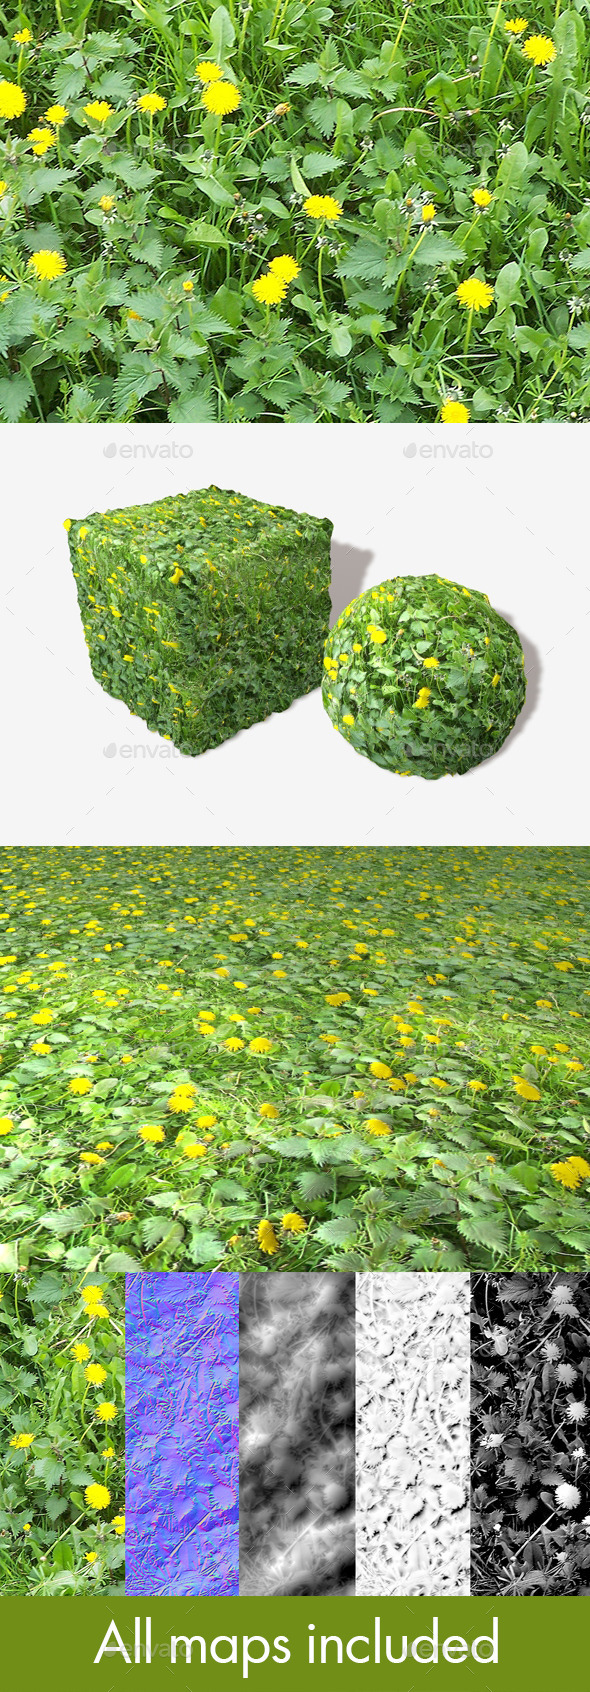 Dandelions and Weeds Seamless Texture - 3DOcean Item for Sale